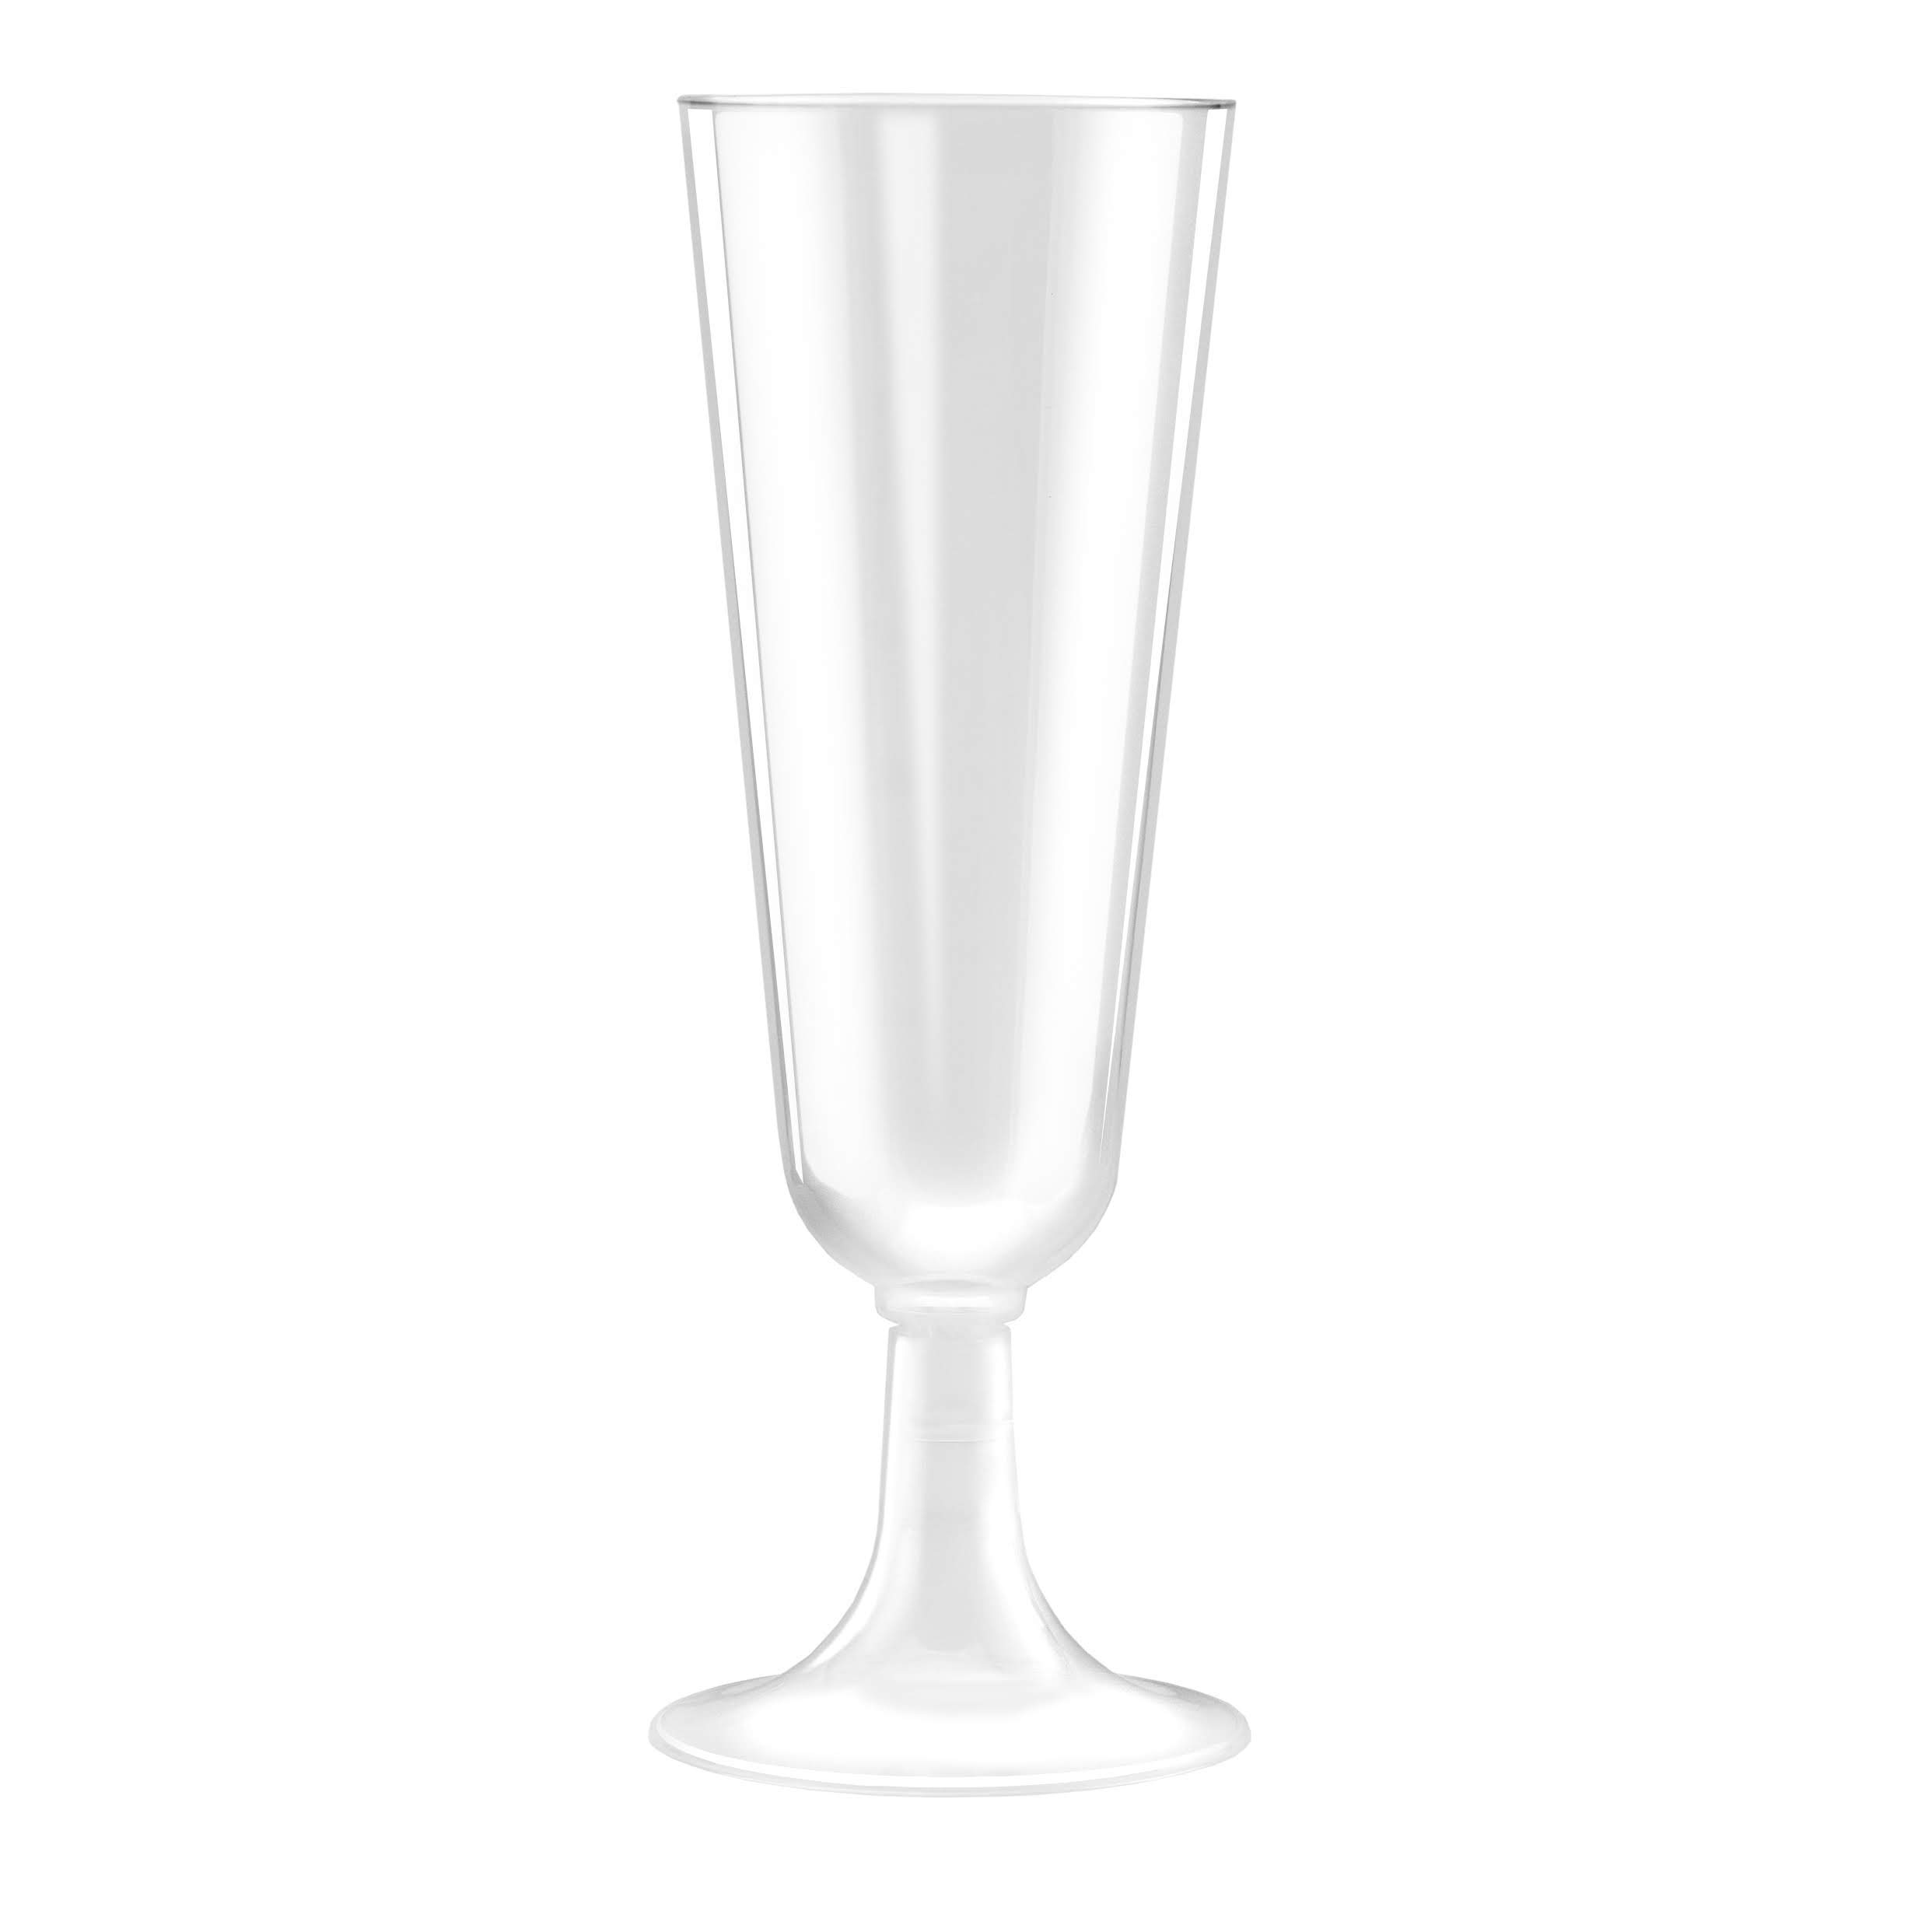 50 Plastic Champagne Flutes   5.5 oz. Clear Hard Disposable Party & Wedding Cups   Premium Heavy Duty Fancy Champagne Flute (50-Pack) by Bloomingoods by BloominGoods